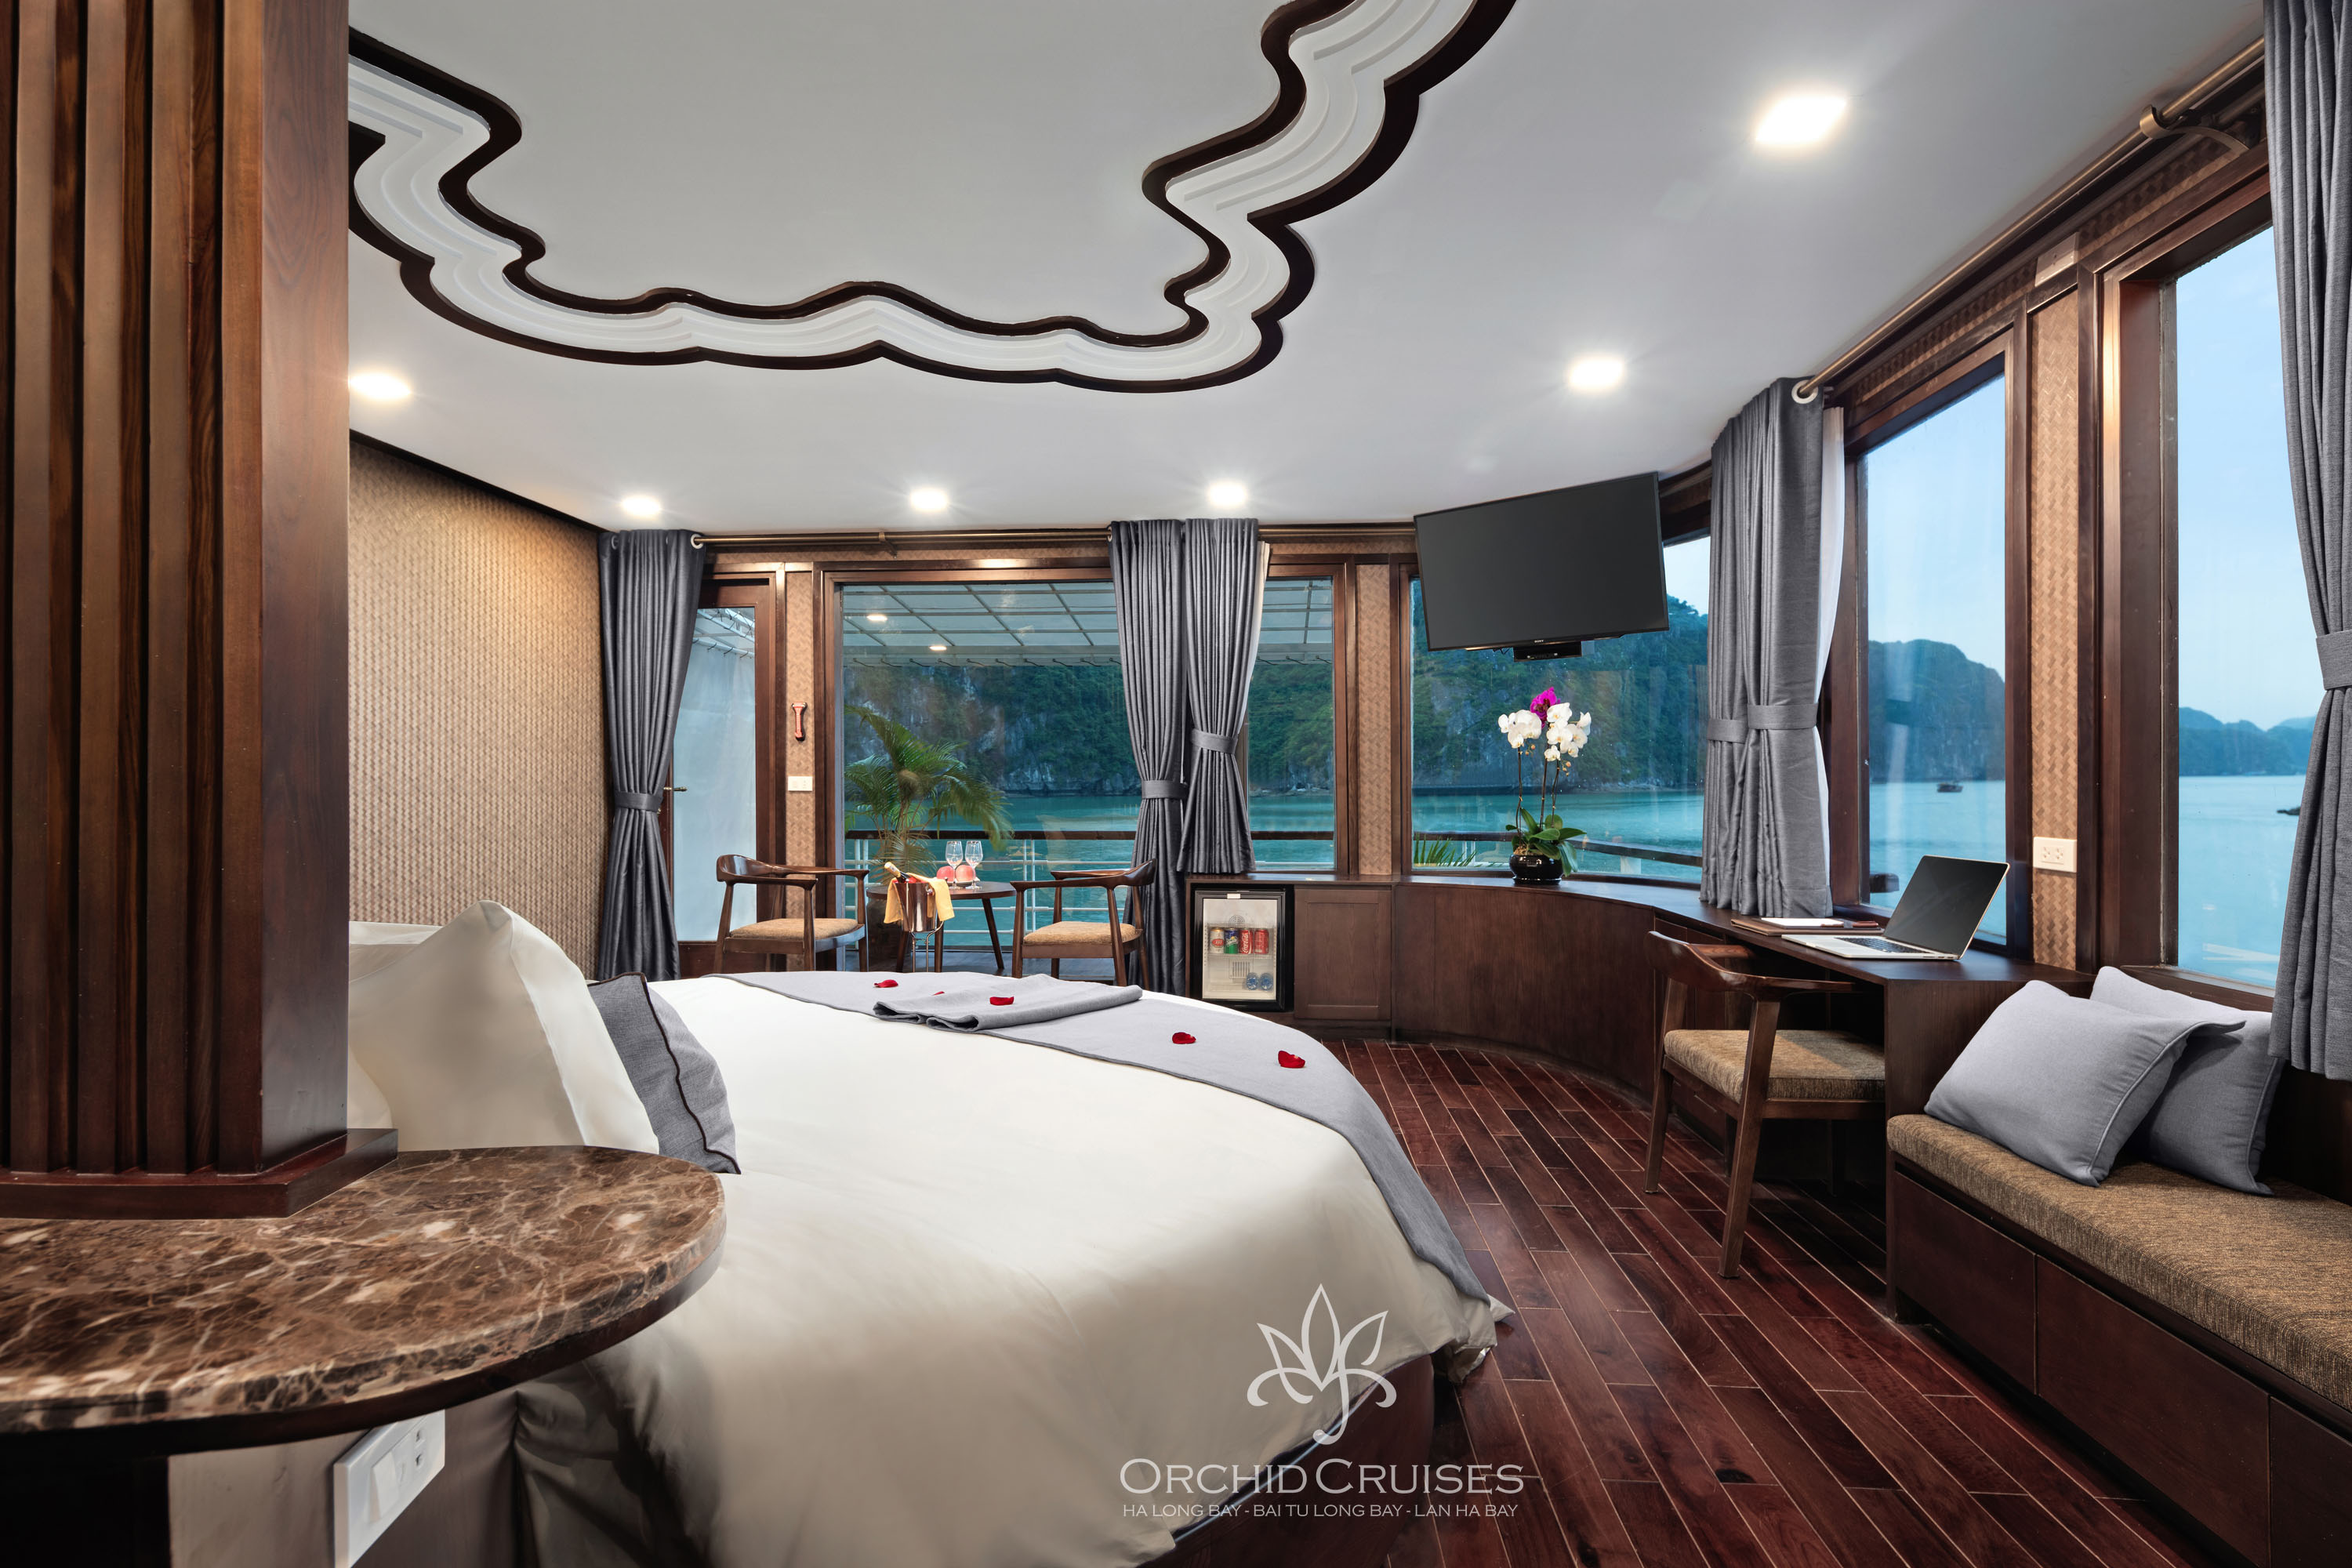 Orchid cruise + Apricot Hotel